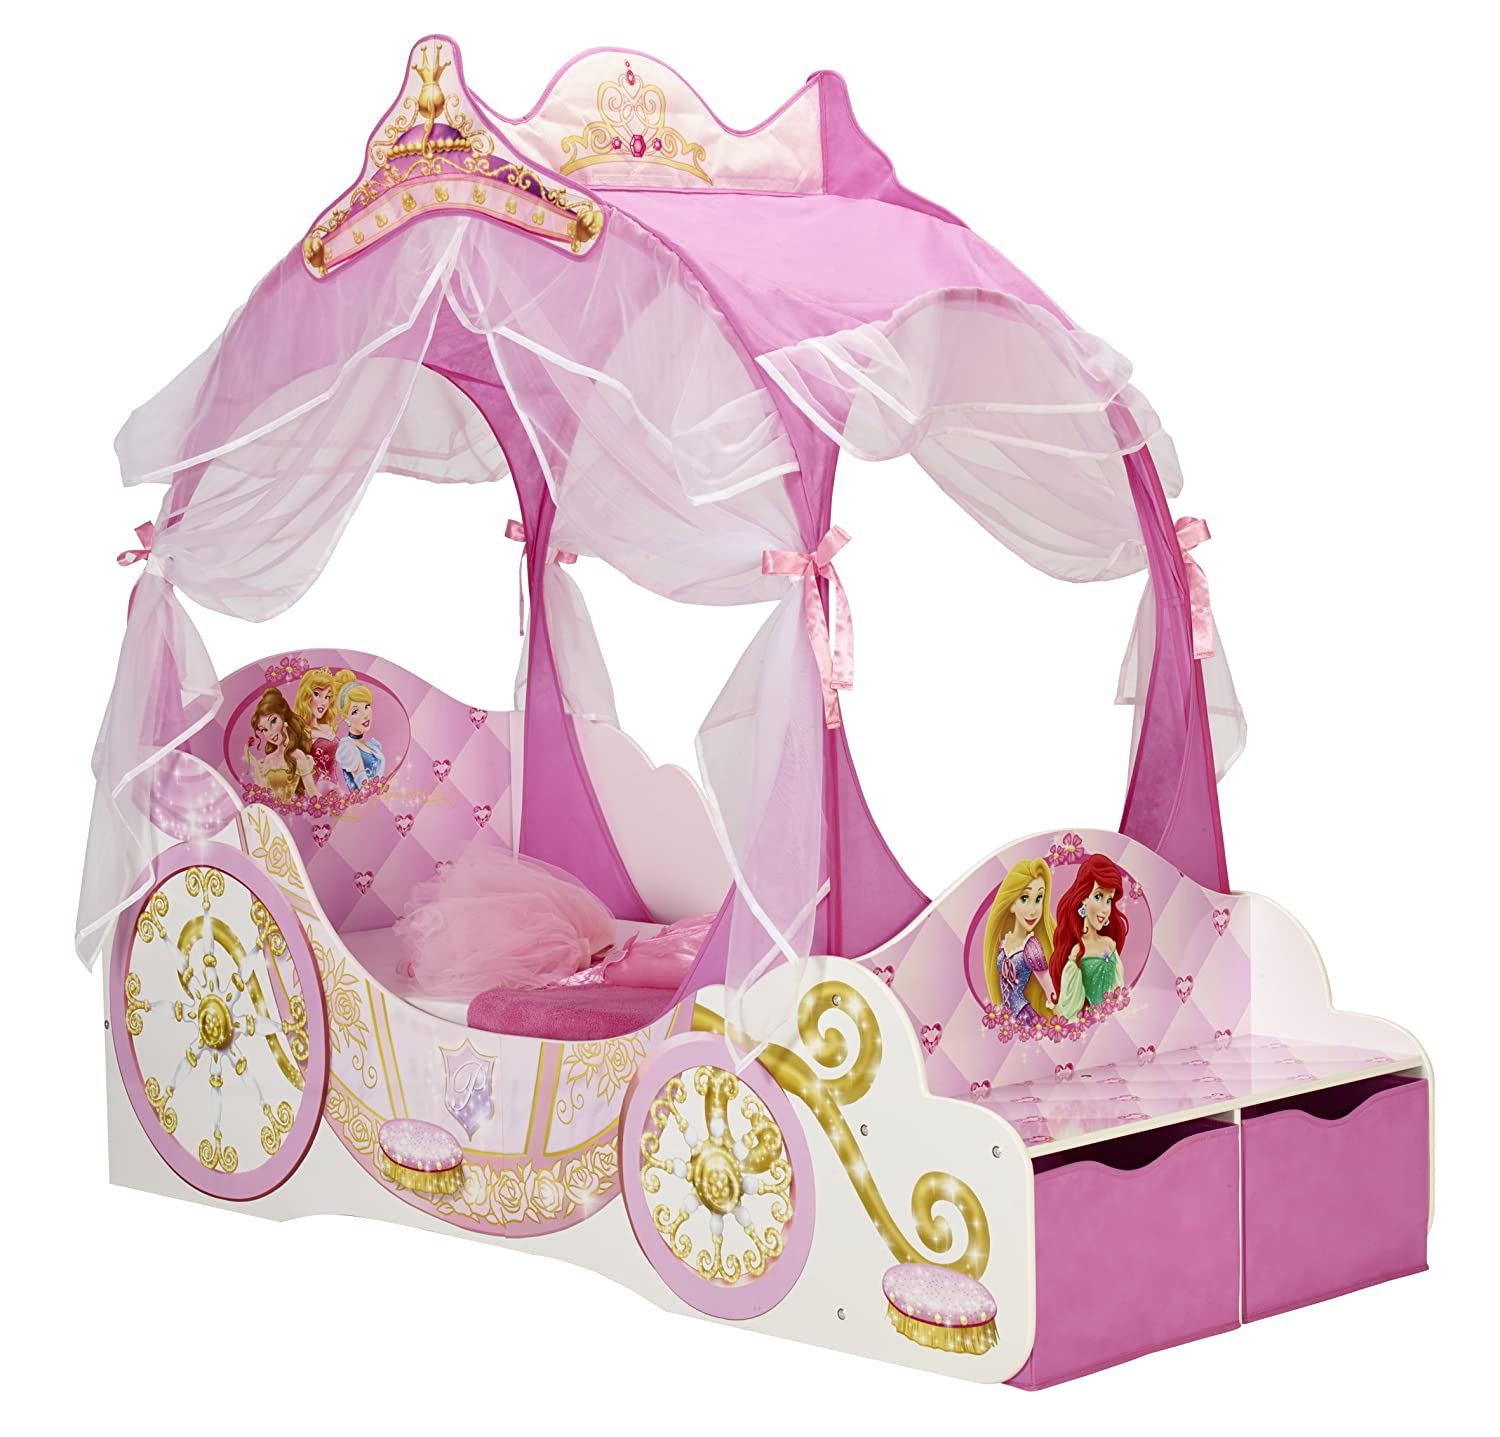 meet 16fb0 a6025 Disney Princess Carriage Kids Toddler Bed by HelloHome